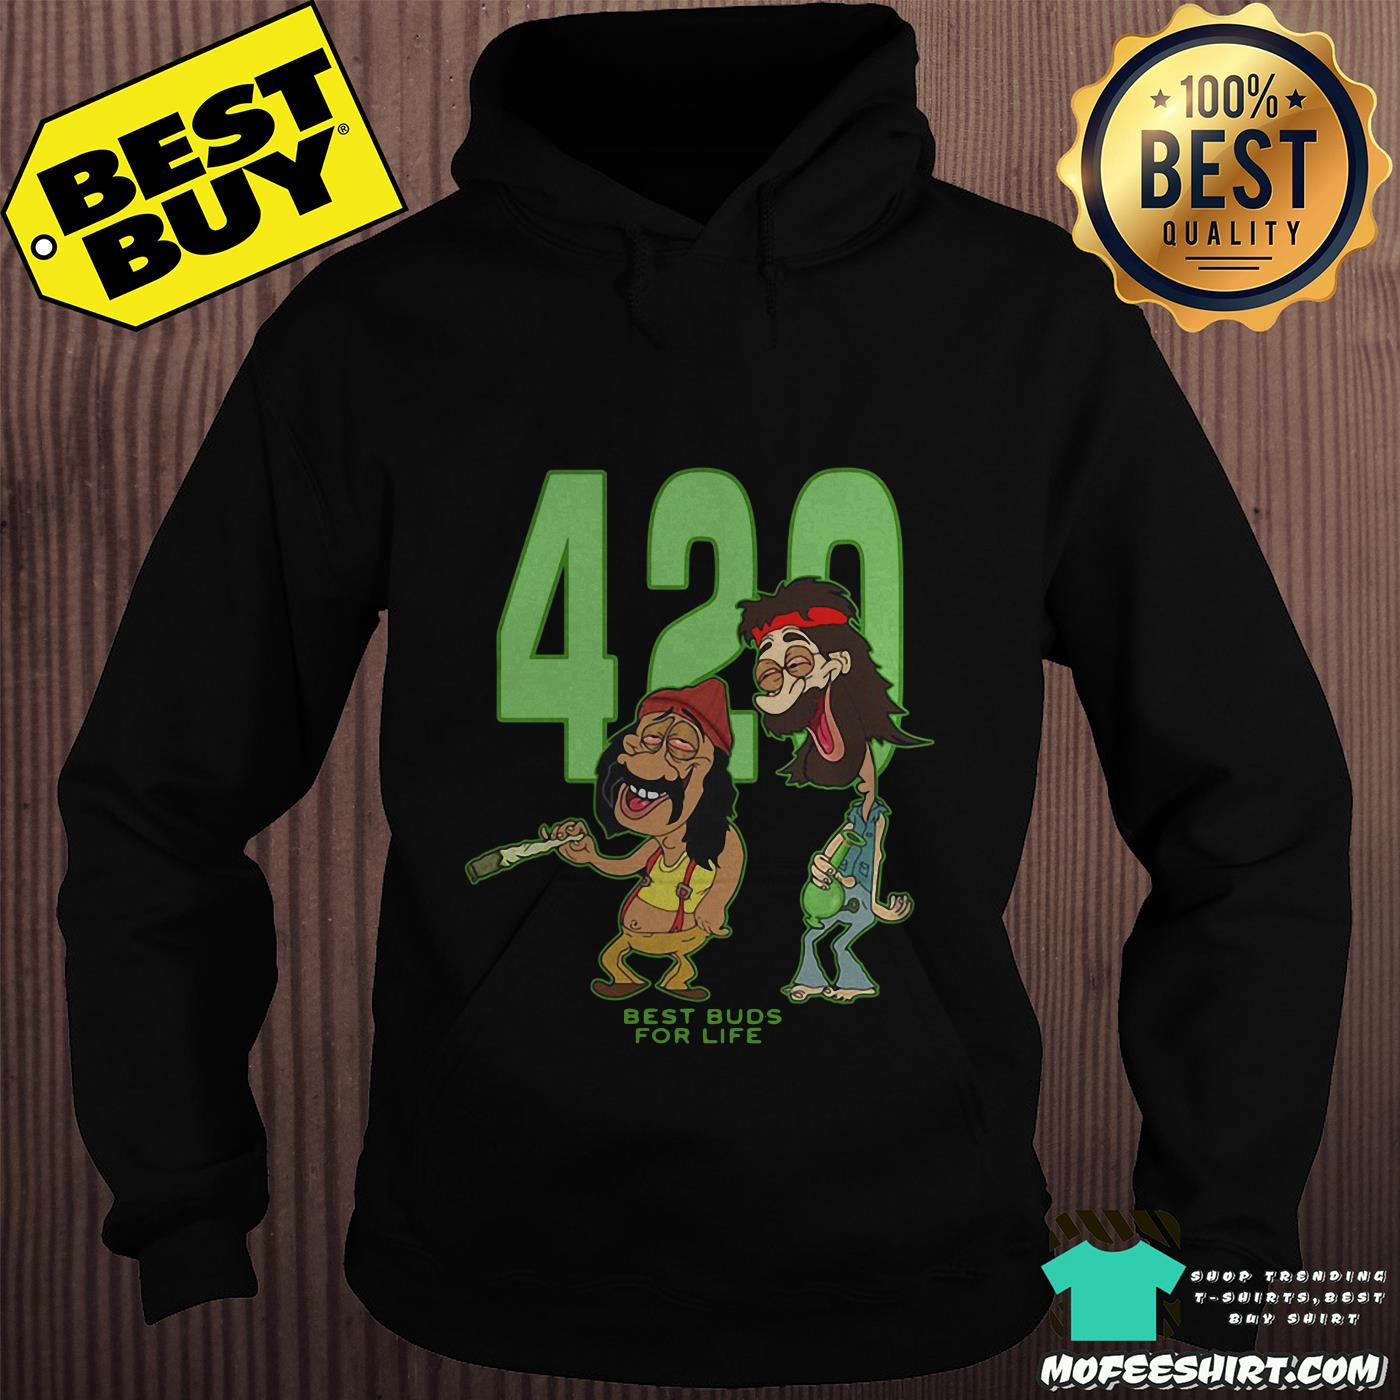 420 best buds for life hoodie - 420 Best Buds For Life Shirt